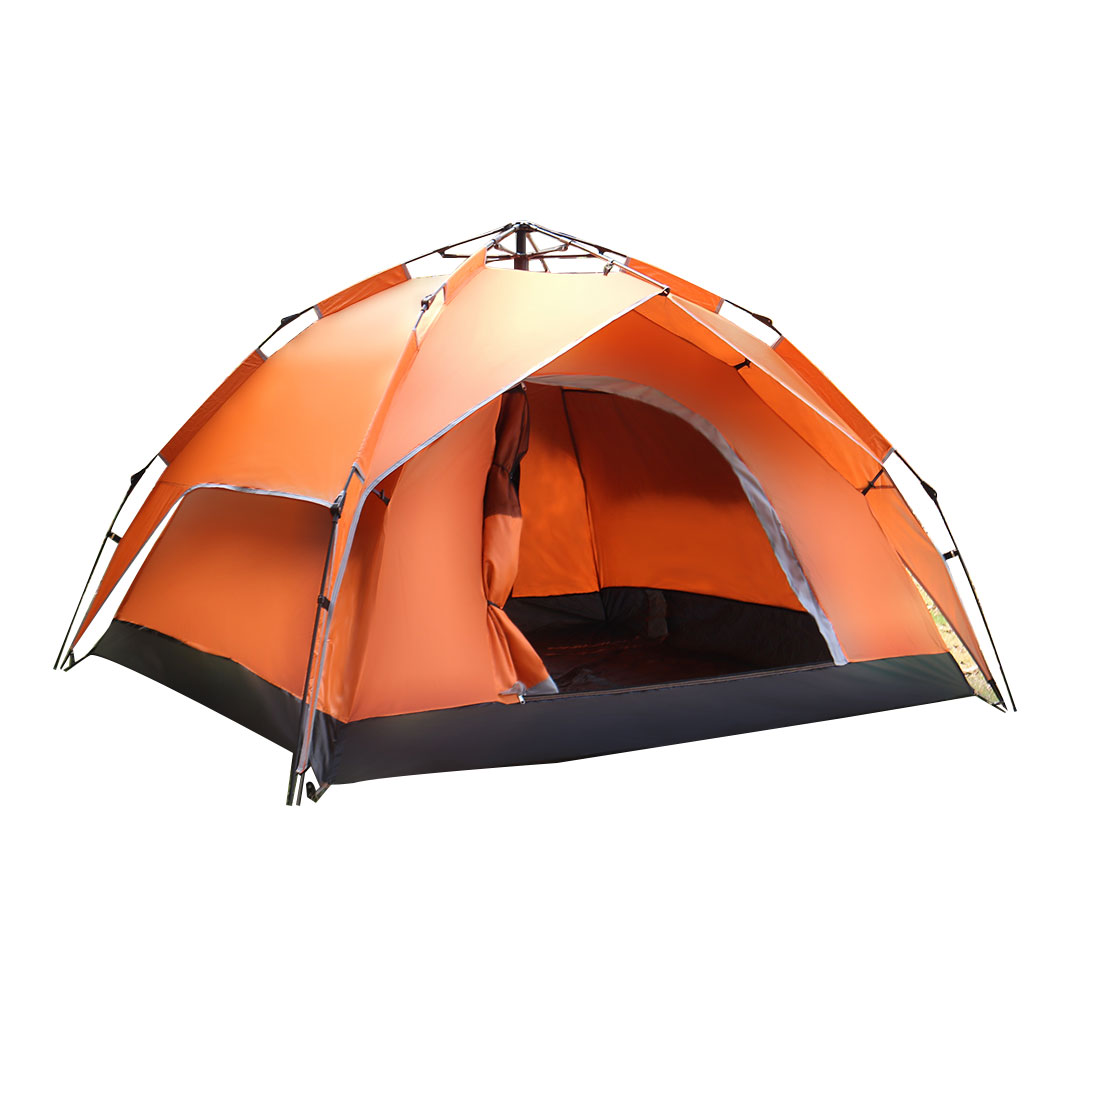 Hiking Double Layer Sun Shelter Foldable Instant Camping Tent 3-5 Person Orange